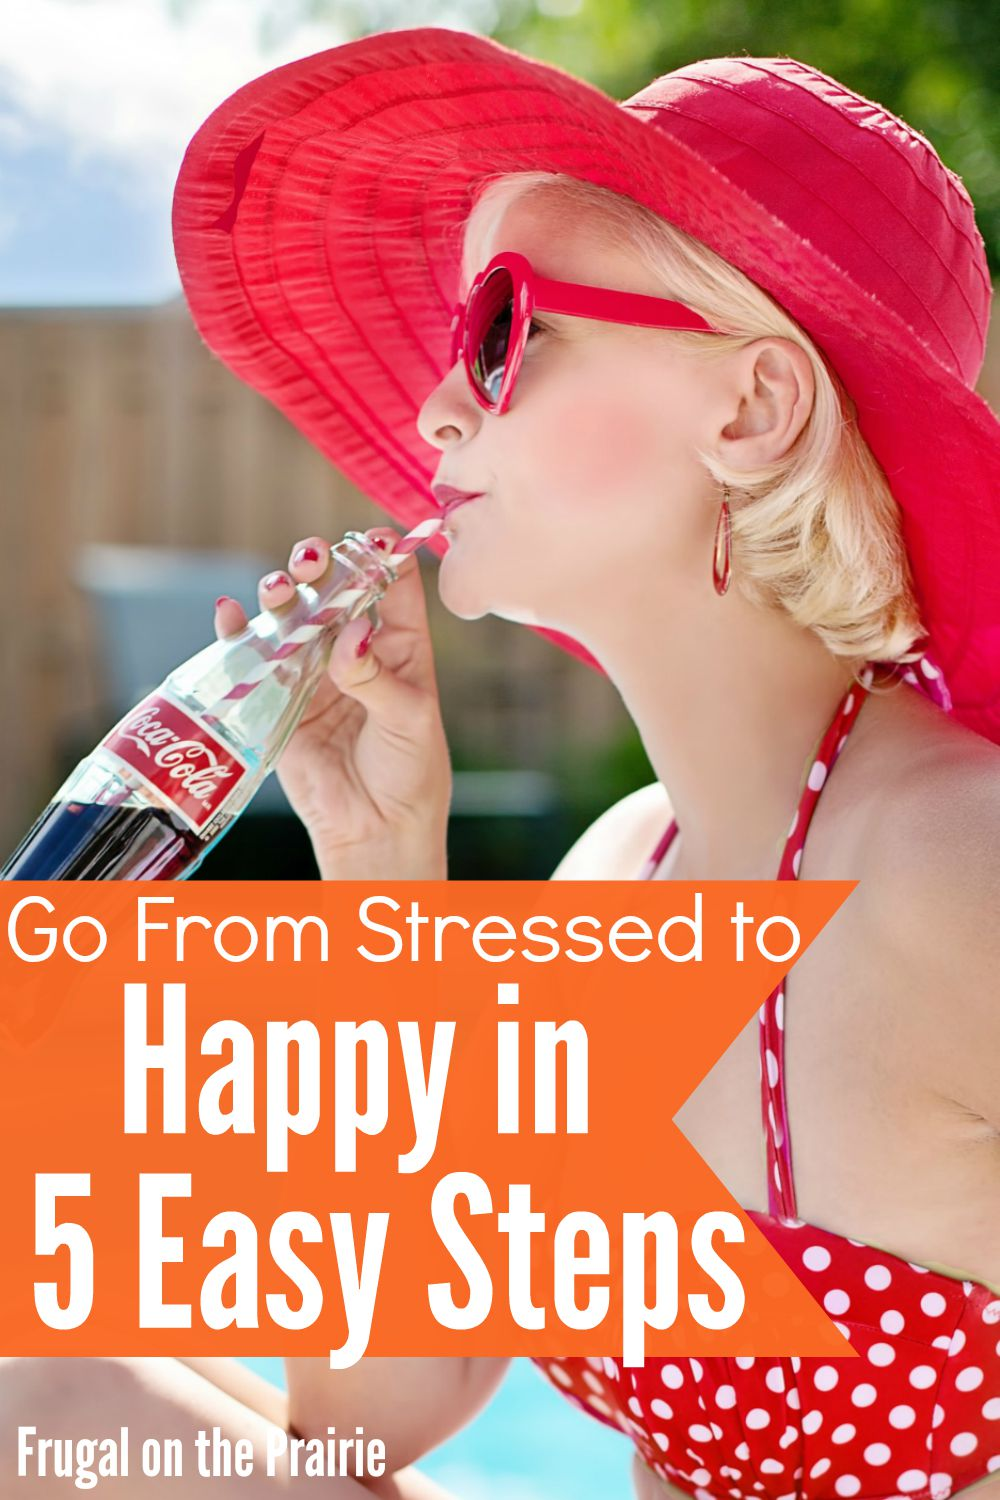 Feeling stressed and overwhelmed but need to get things done? Go from frazzled to happy in these 5 easy steps so you can accomplish your to-do list!